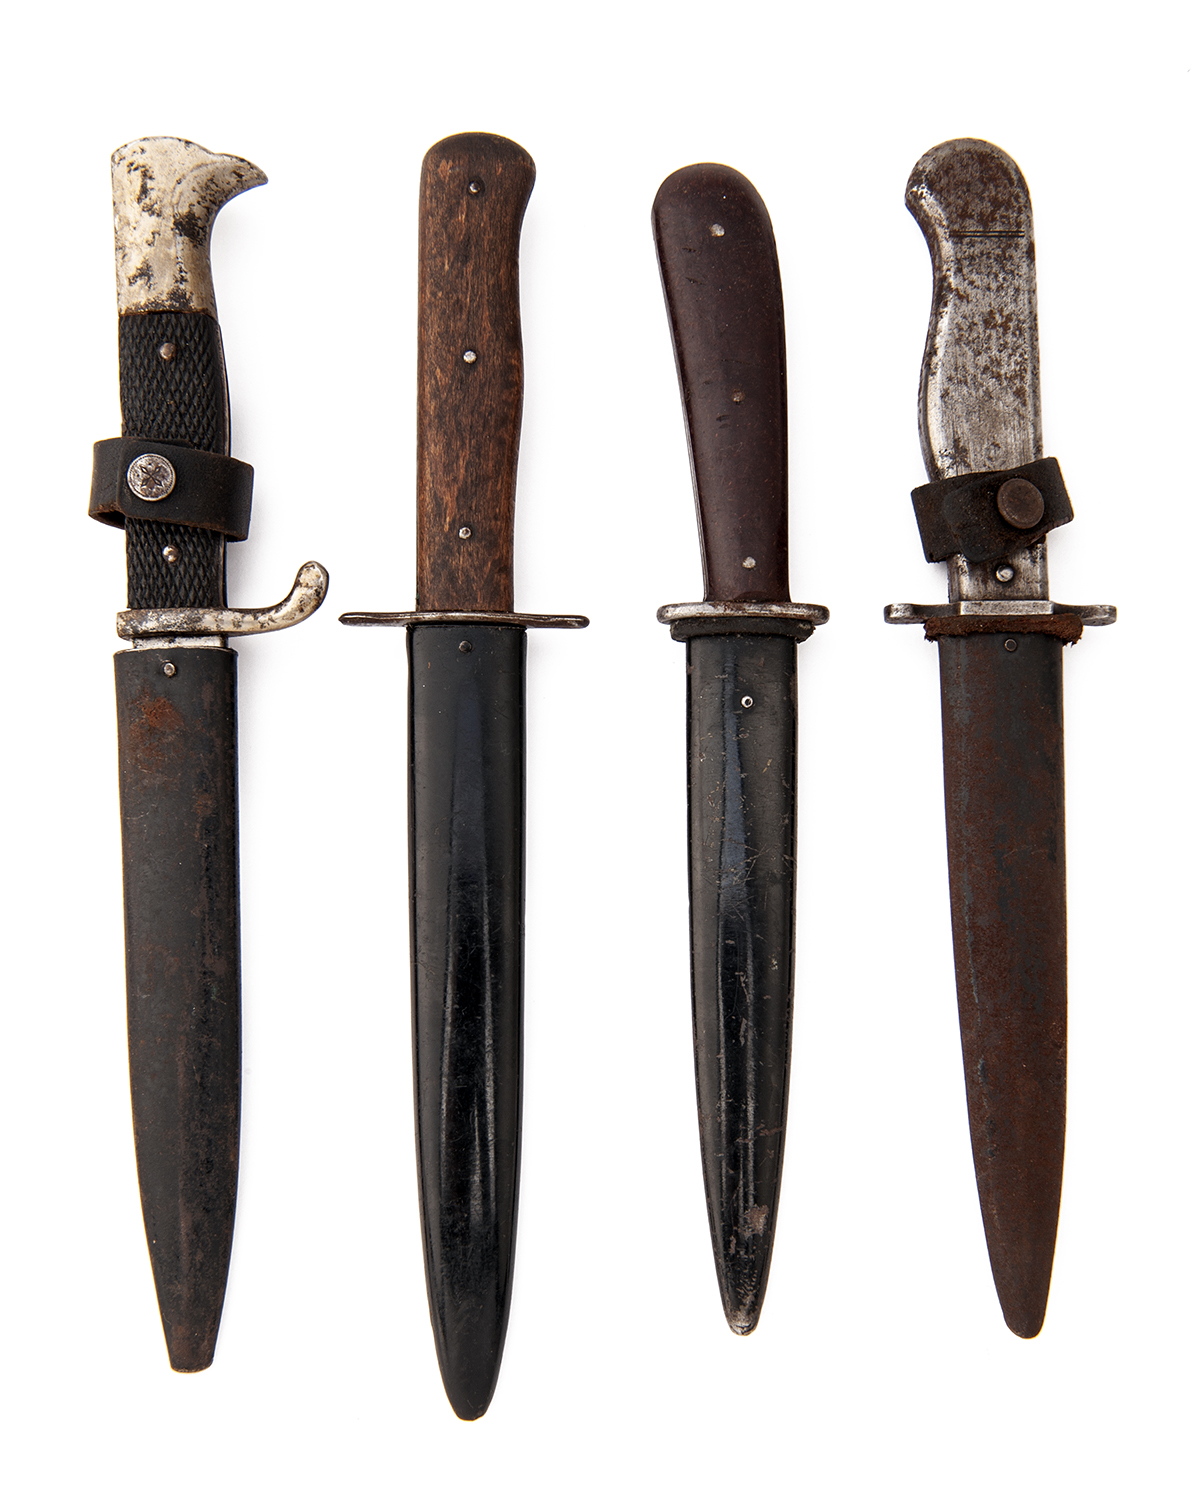 Lot 220 - FOUR GERMAN WORLD WAR ONE AND TWO BOOT or TRENCH-KNIVES, ONE SIGNED 'PUMA', various blade types,